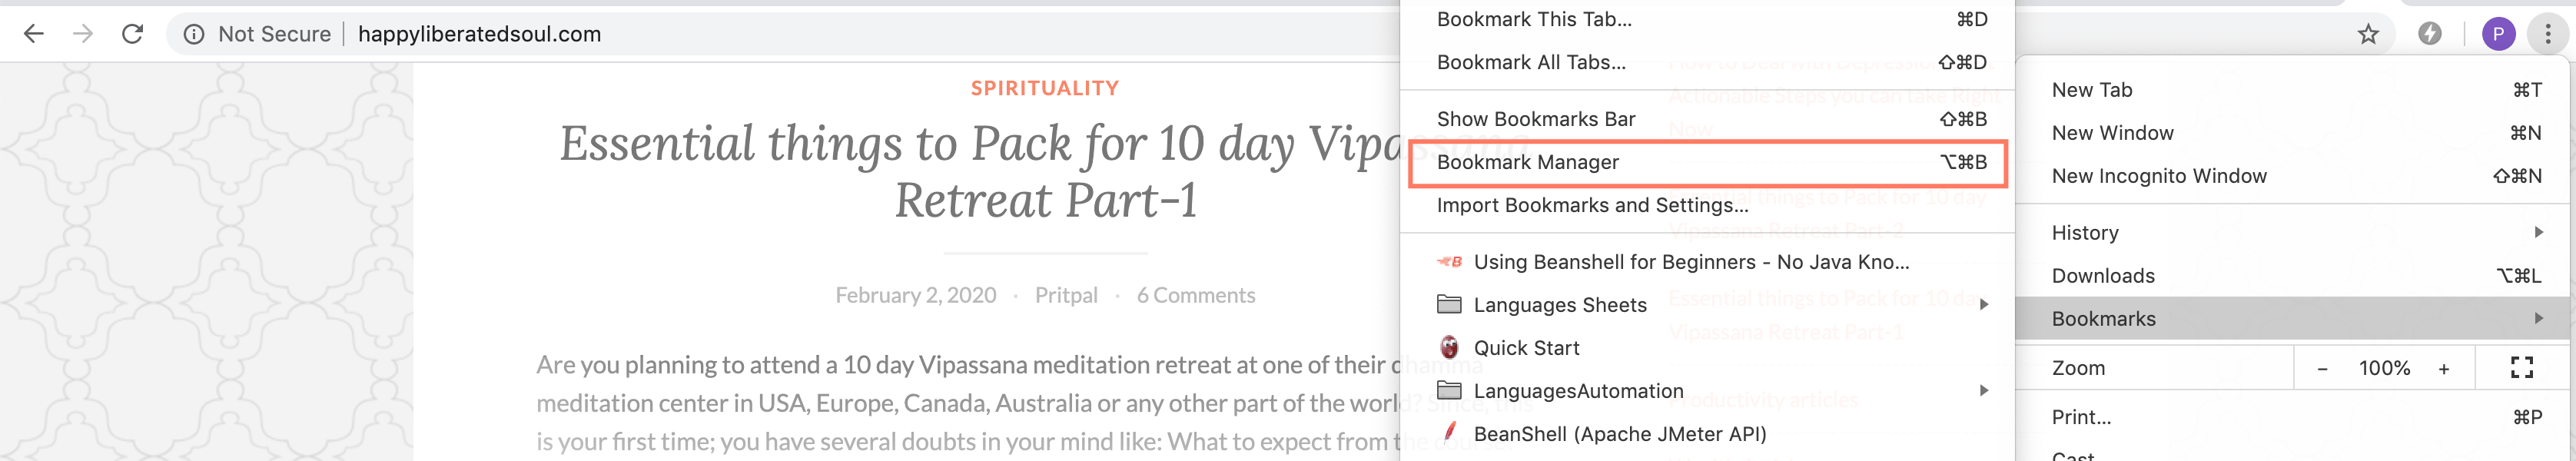 Step 3 of How to open Bookmark manager in chrome